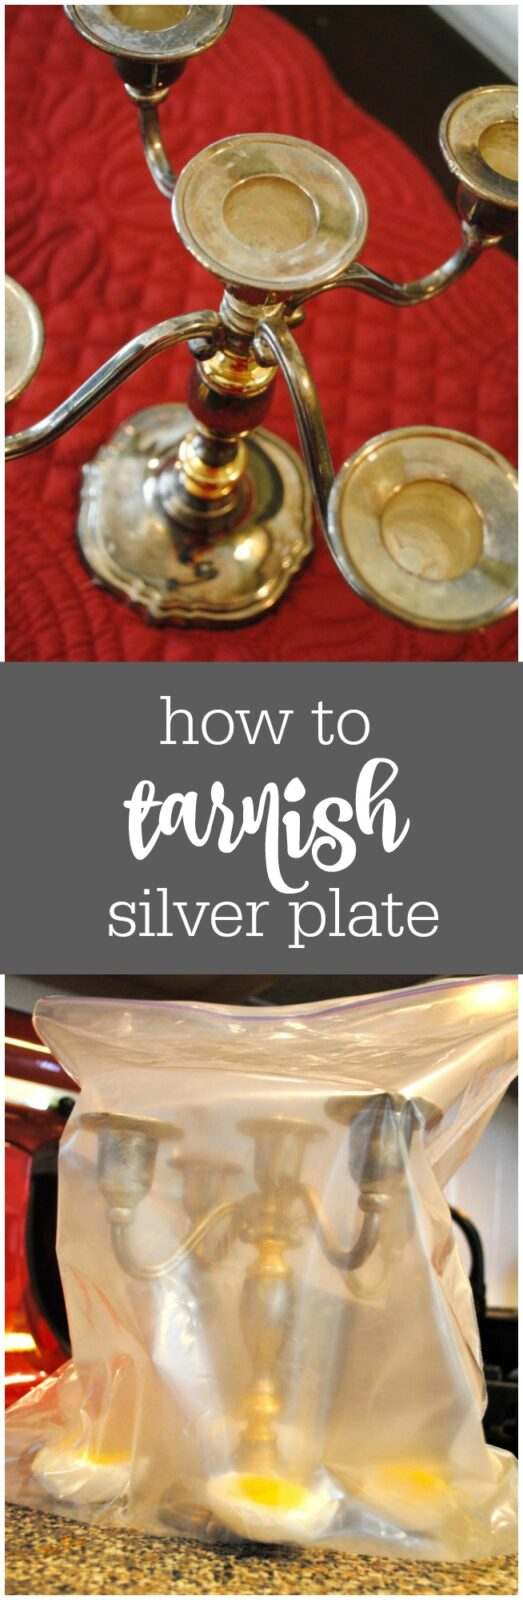 How to tarnish silver or silver plate by The Party Teacher